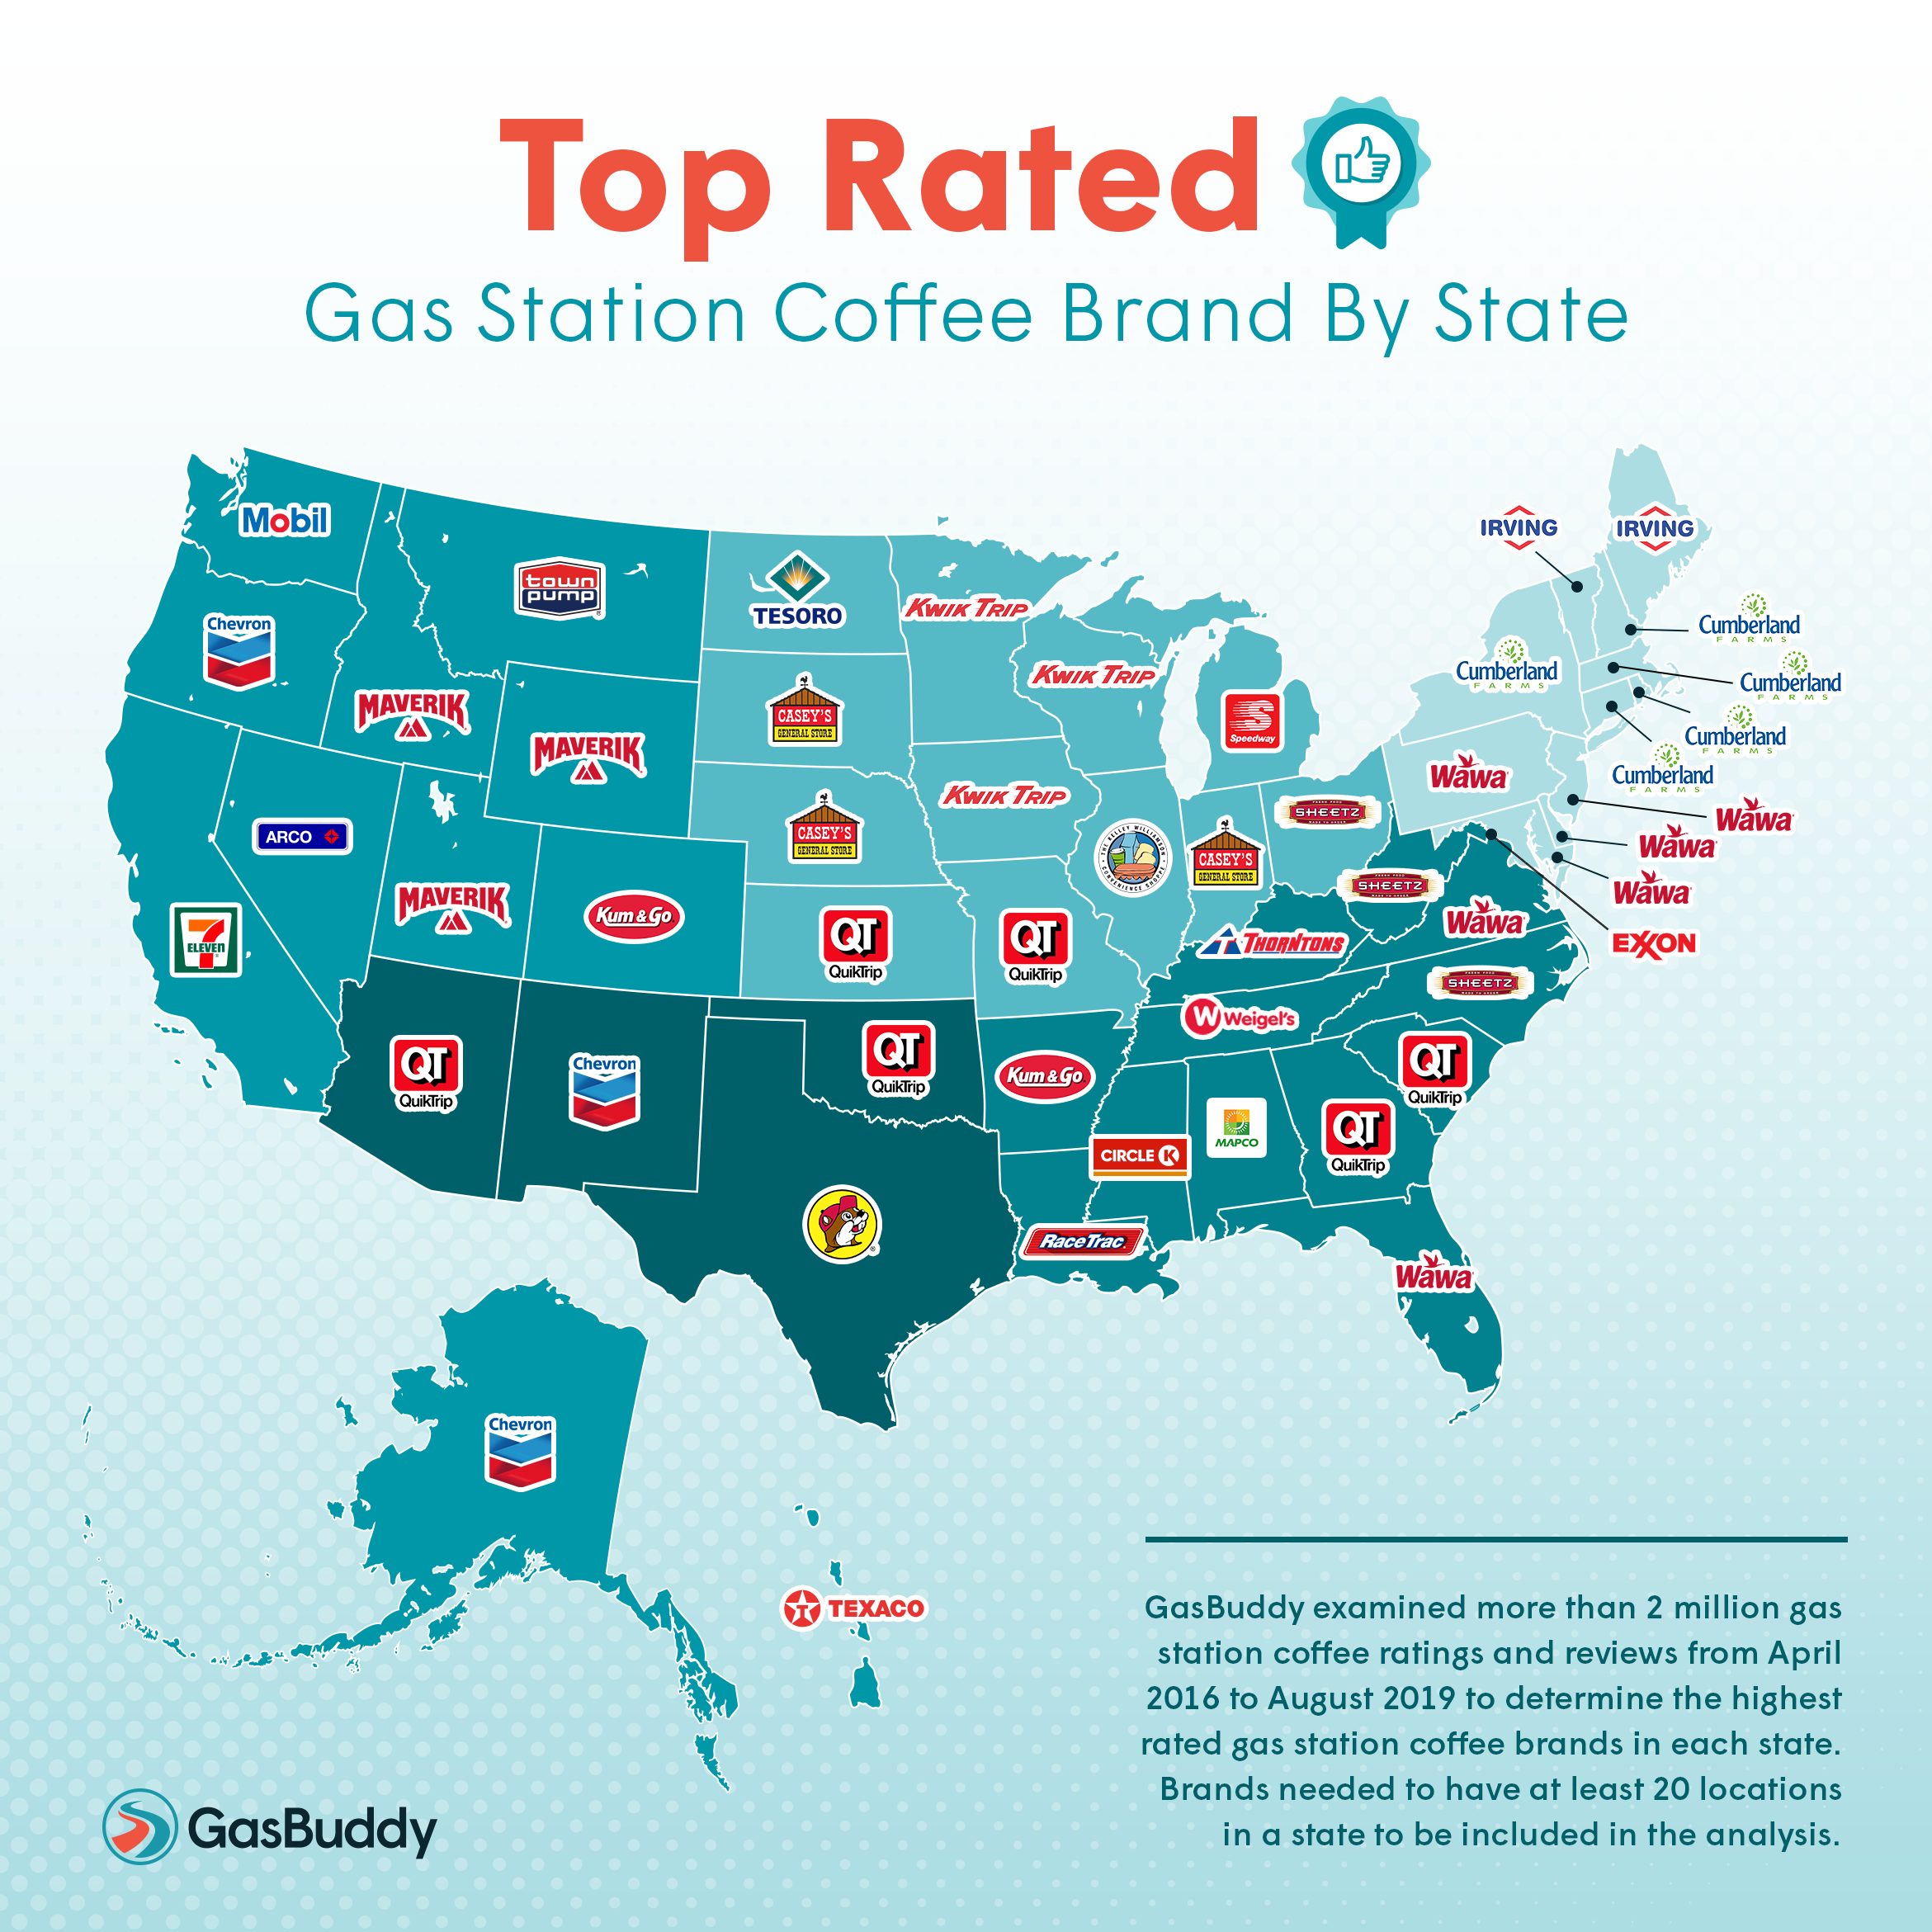 gasbuddy app Archives - GasBuddy for Business on mapquest map, craigslist map, microsoft map, rocky mountain crude pipeline map, starbucks map, pal codes map, bank of america map, national geographic map, fuel-cost map, google map, disneyland hong kong map, target map, evernote map, foreign military sales country map,